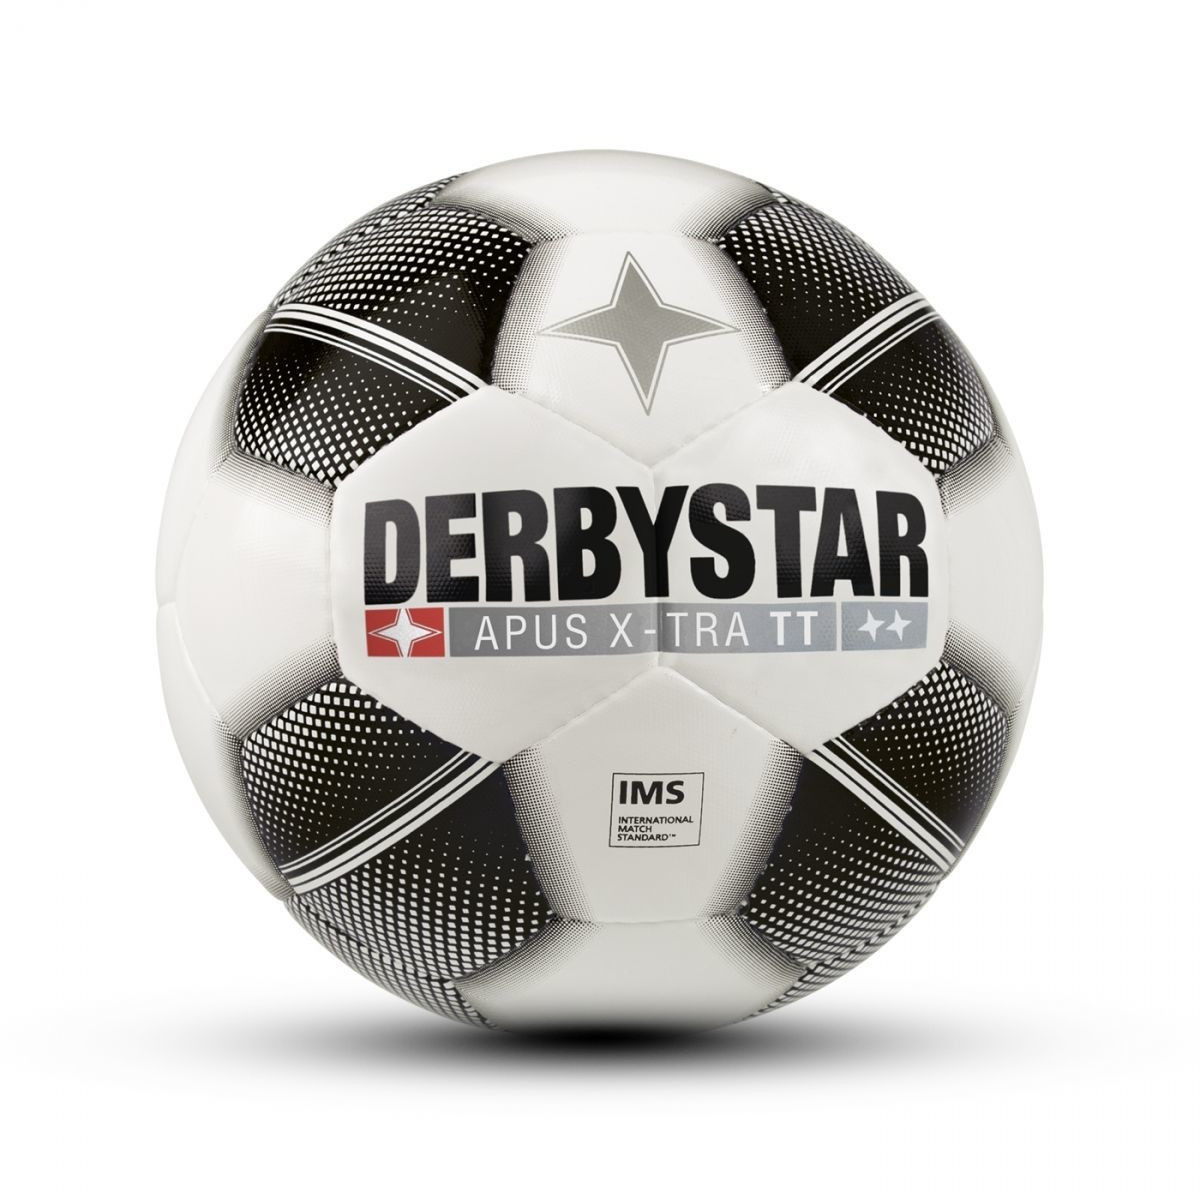 Derbystar Apus Xtra TT white black